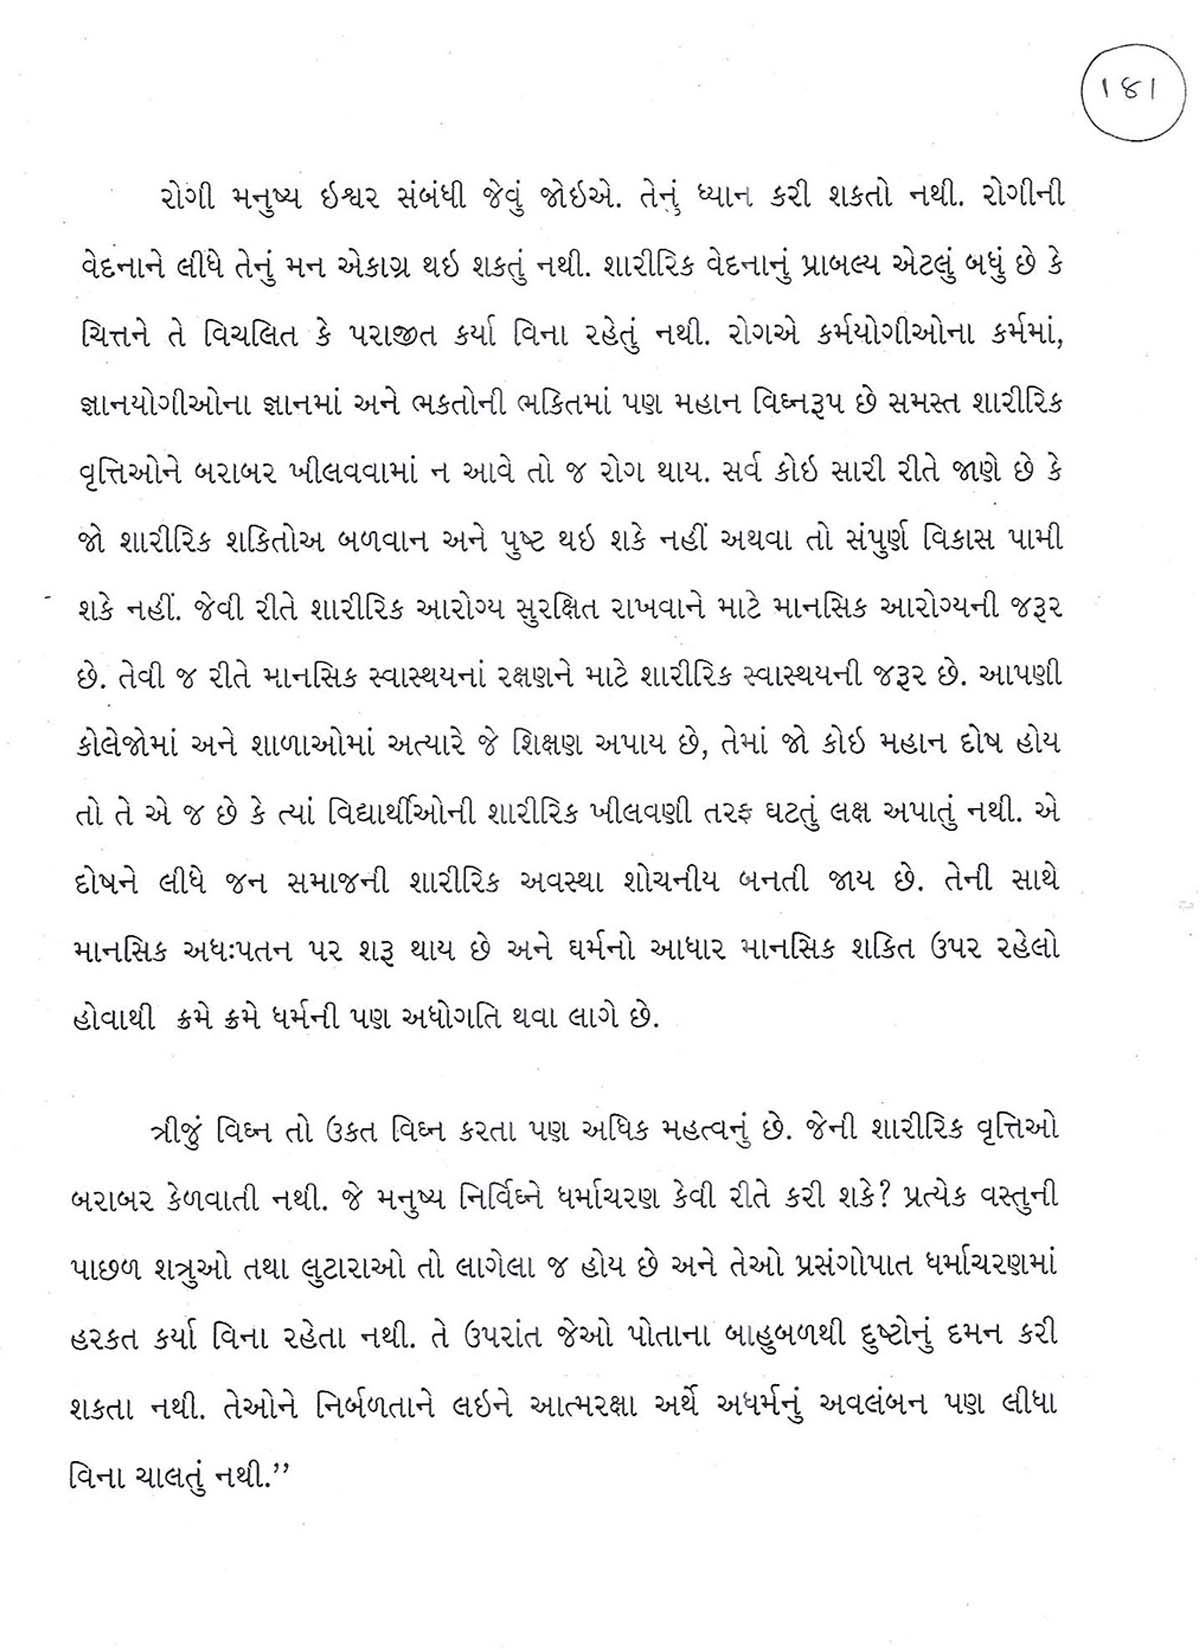 Short Note On Mahatma Gandhi In Hindi Mahatma Gandhi